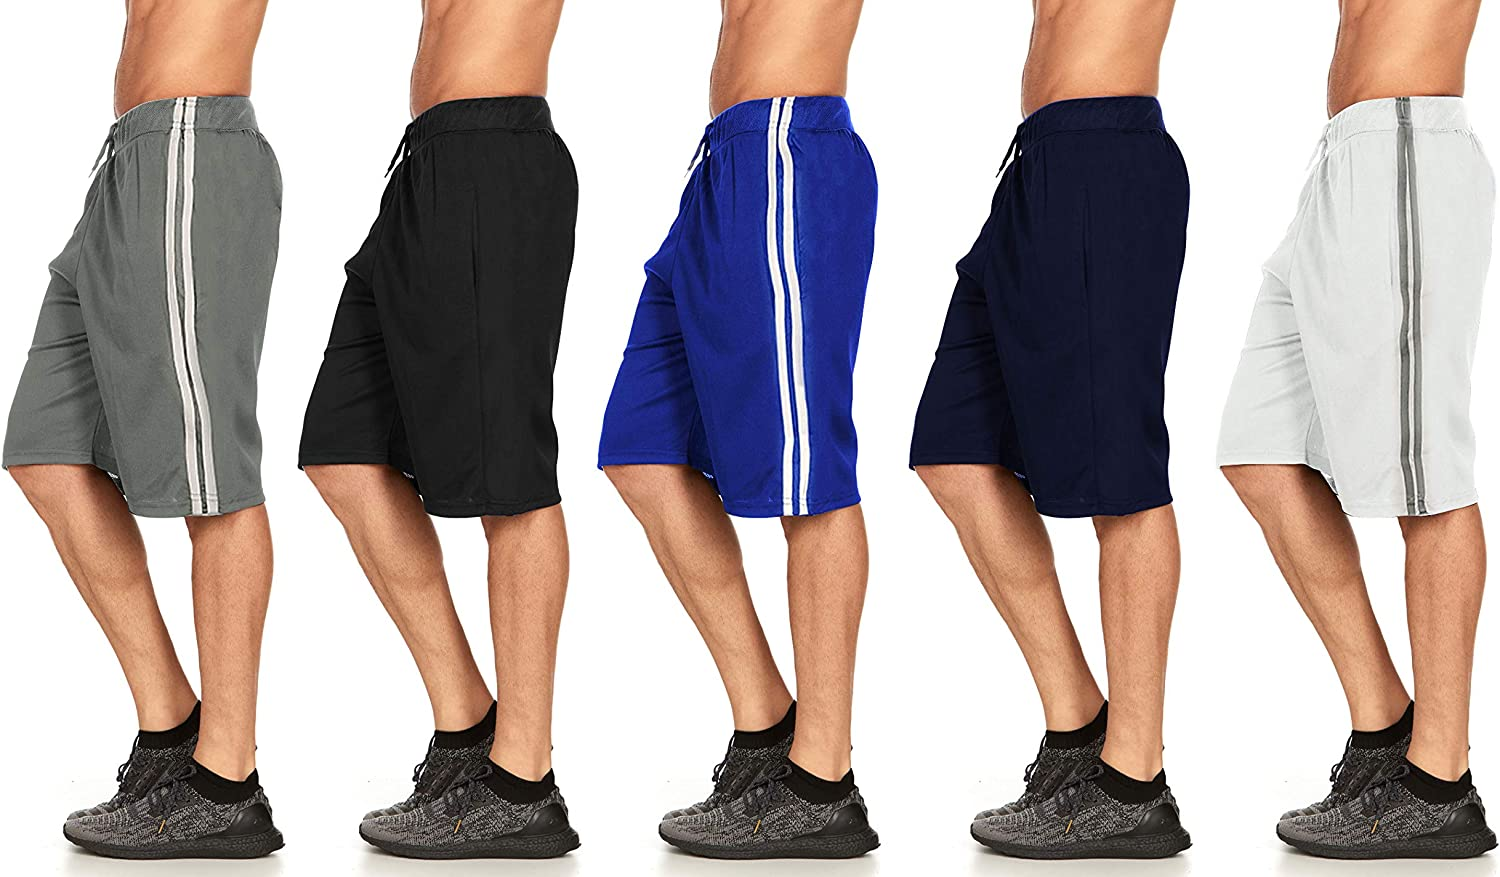 DARESAY Mens New product!! Athletic Online limited product Shorts with Perfor Active Pockets Workout